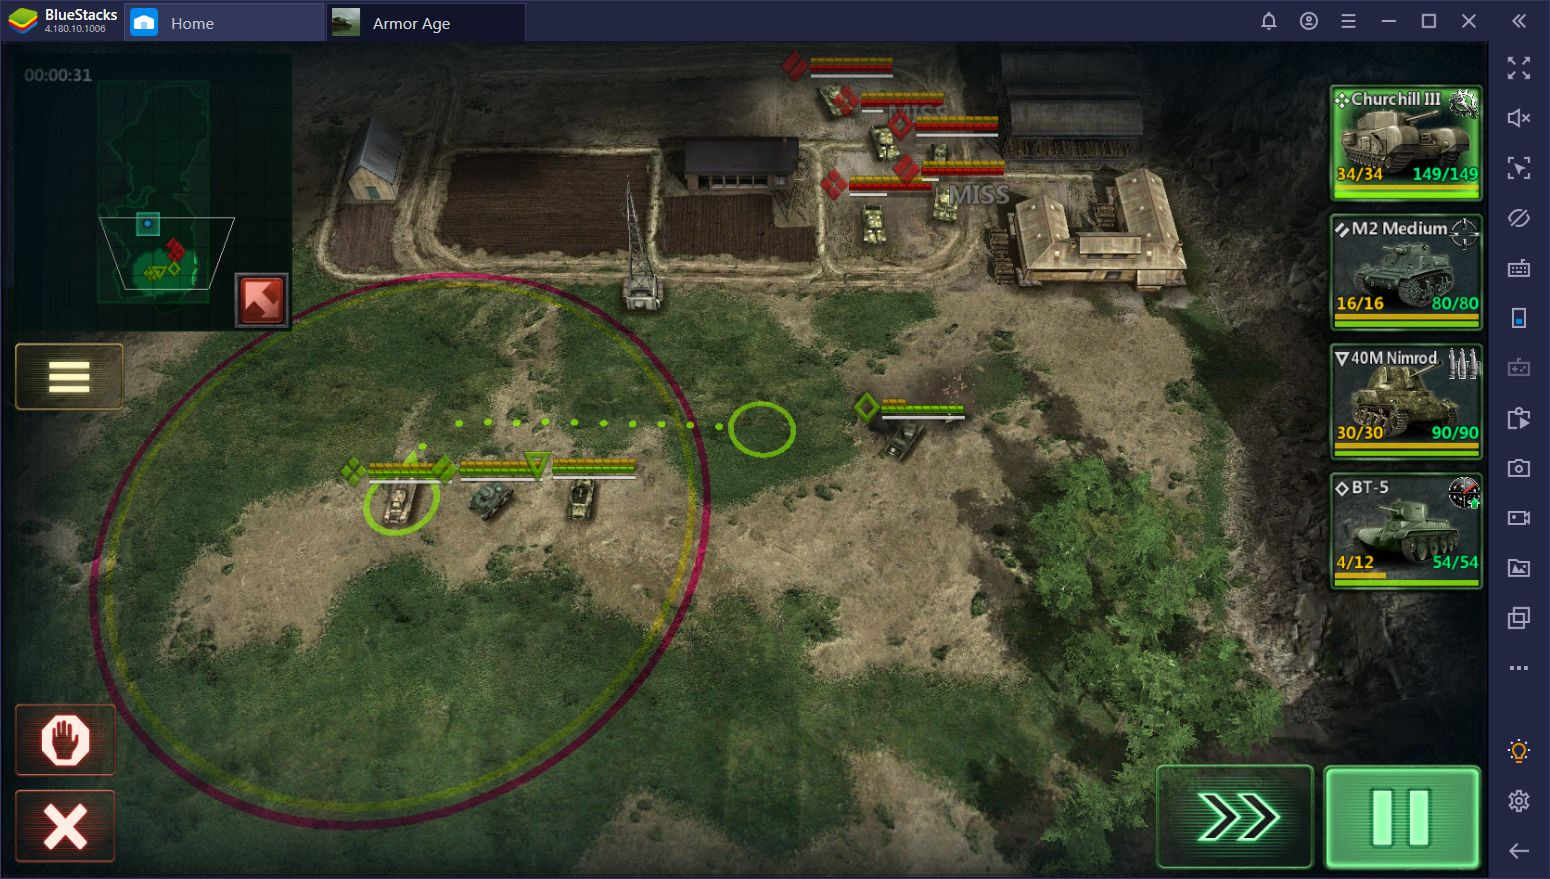 Armor Age: Tank Wars on PC - Combat Tips and Tricks to Defeat Your Enemies